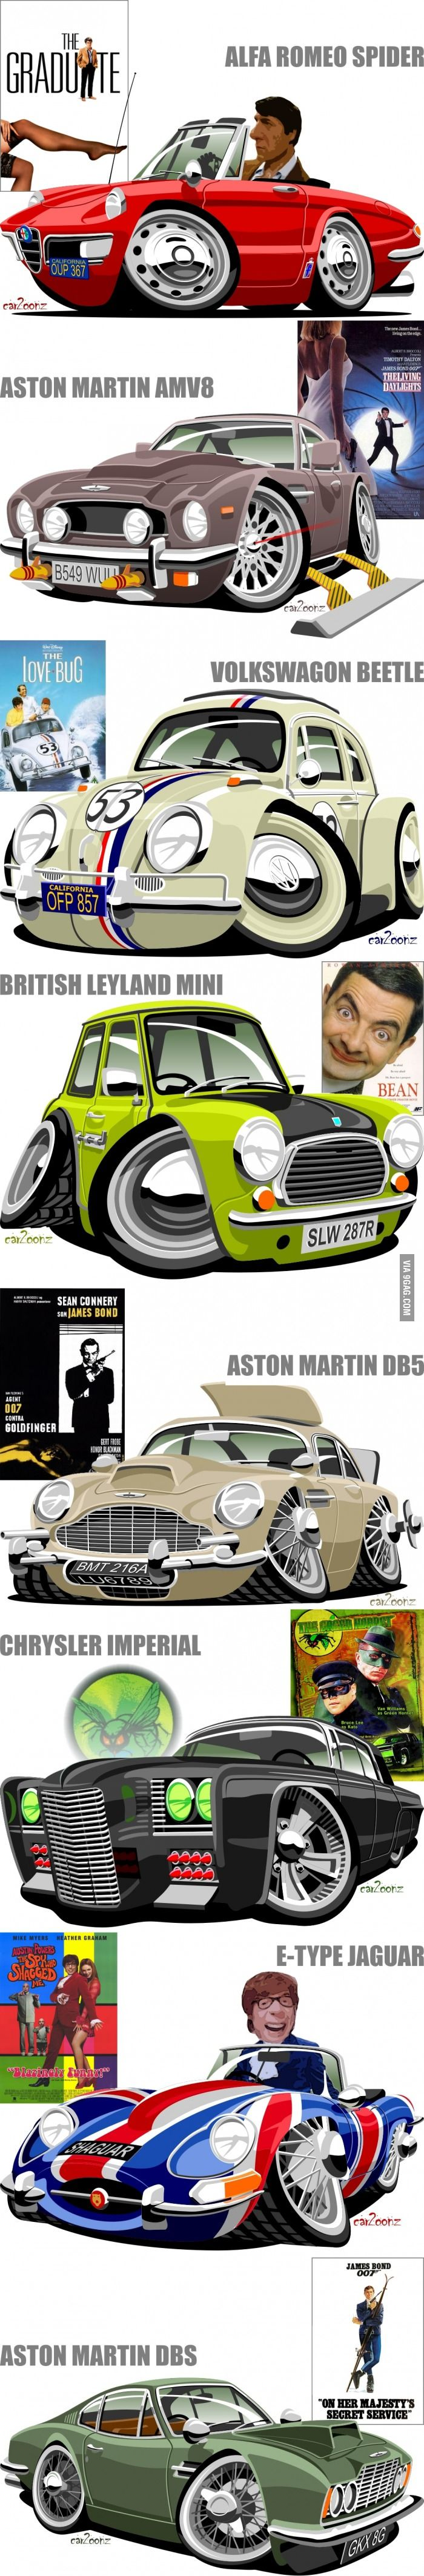 best drawings of cars images on pinterest vintage cars